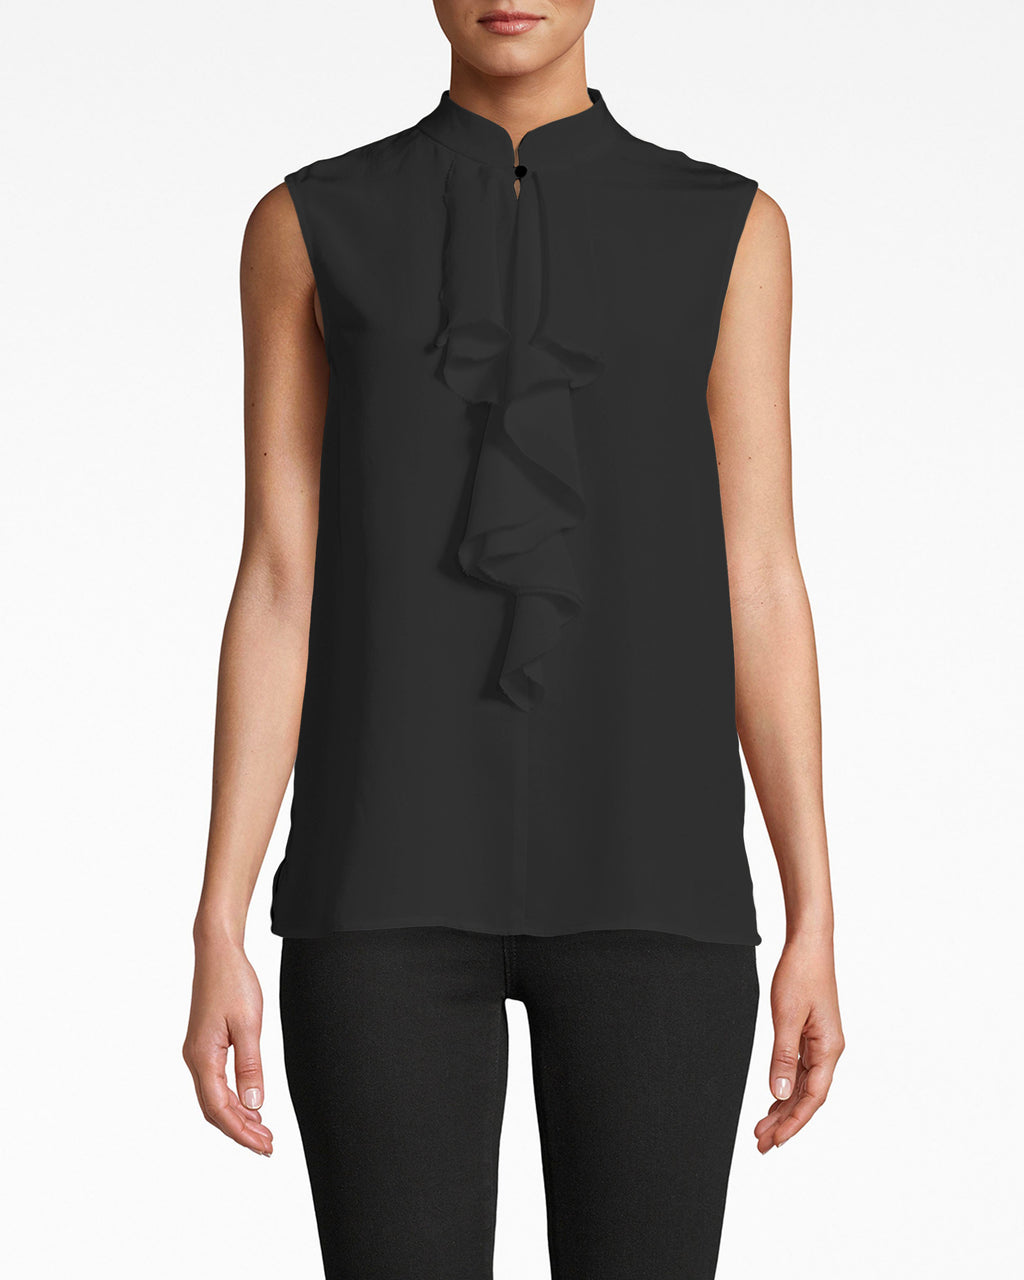 AS10211 - SOLID SILK SLEEVELESS RUFFLE BLOUSE - tops - blouses - Professsional summer. This sleeveless blouse exudes chic with a mock neck collar and centered ruffle. Pair with pants or a pencil skirt.